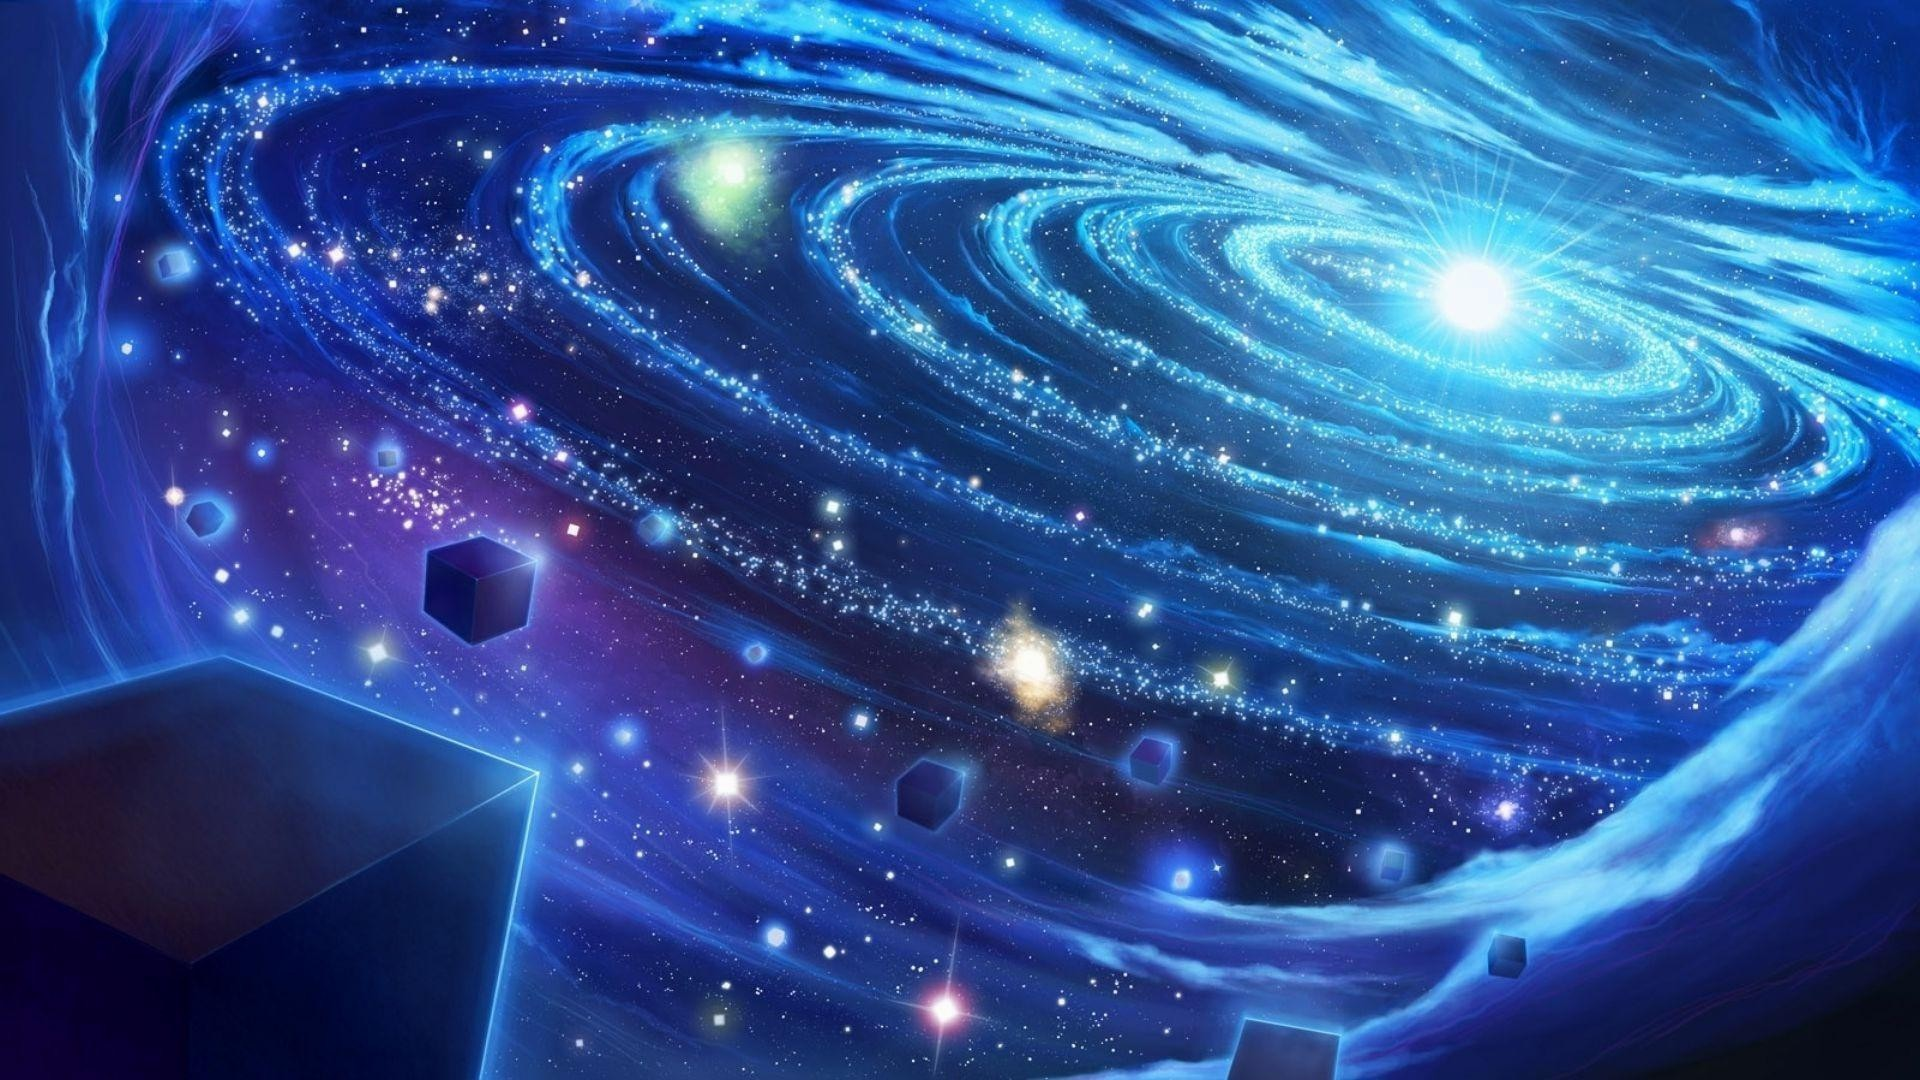 Samsung Galaxy 3d Wallpapers Free Download Blue Galaxy Background 183 ① Download Free Awesome Hd